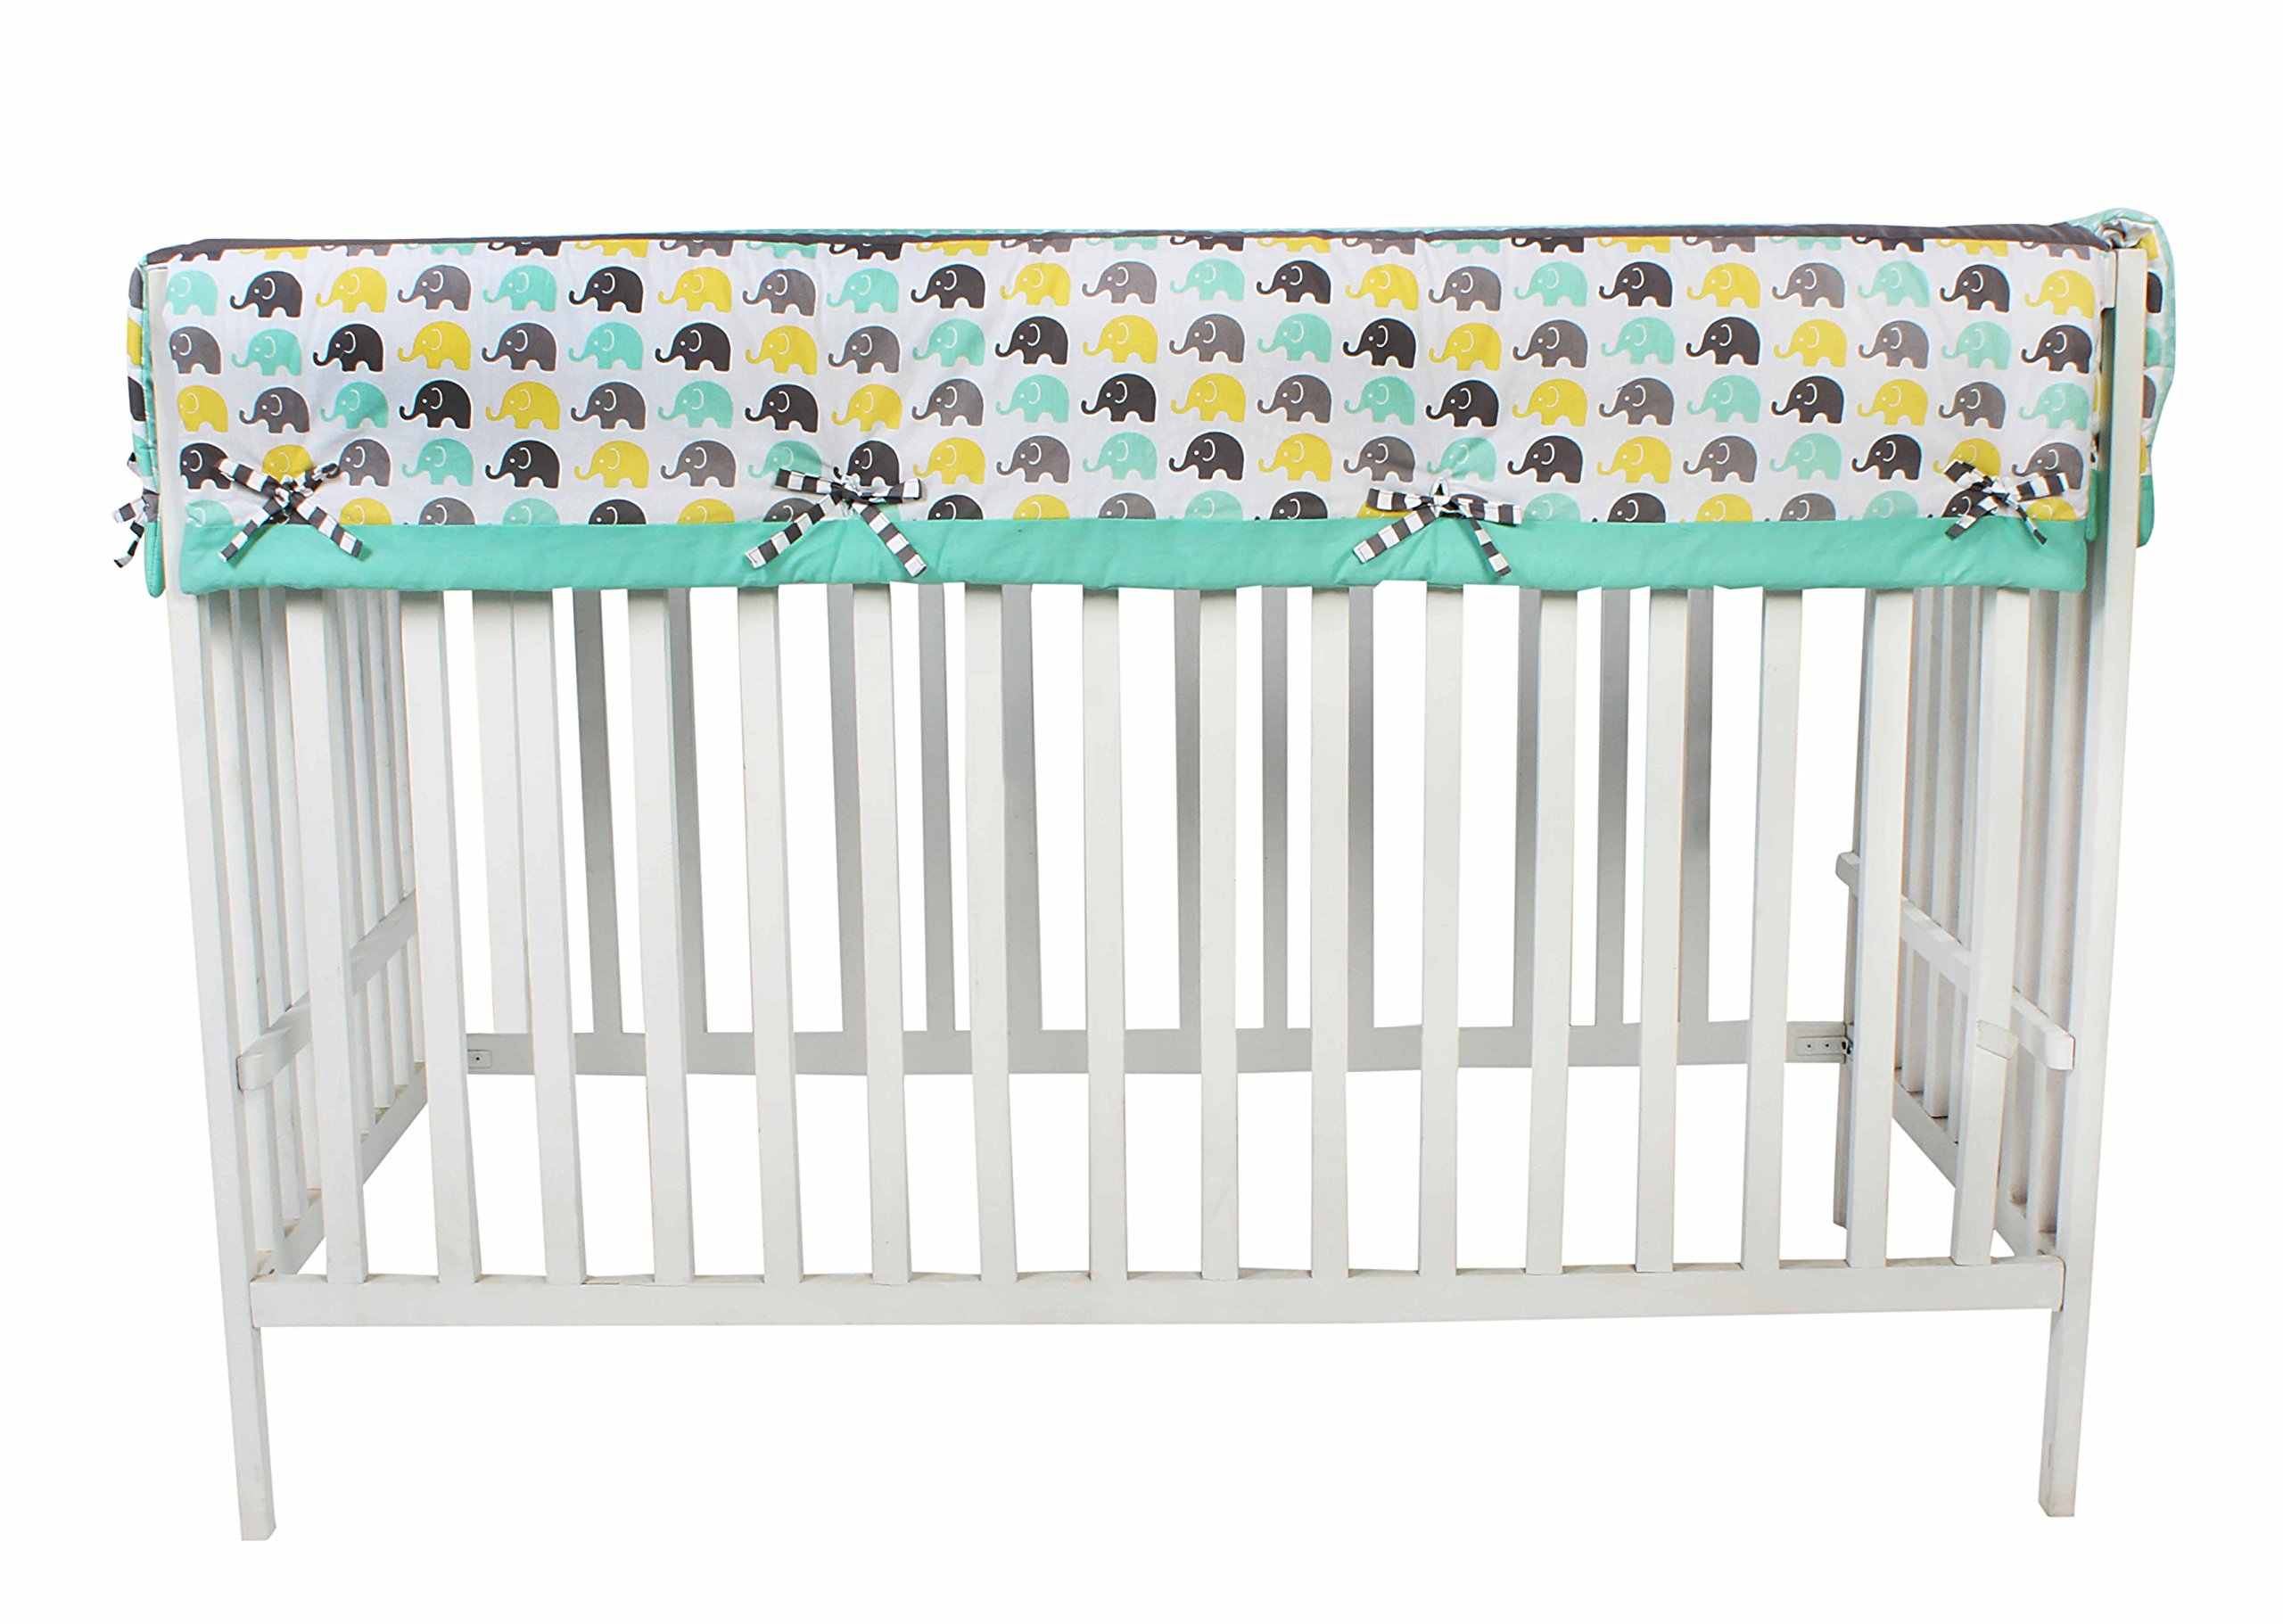 Bacati Elephants Unisex Long Crib Rail Guard Cover Made with 100 Cotton Percale Fabrics and Polyester Batting for US Standard Cribs, Mint/Yellow/Grey by Bacati